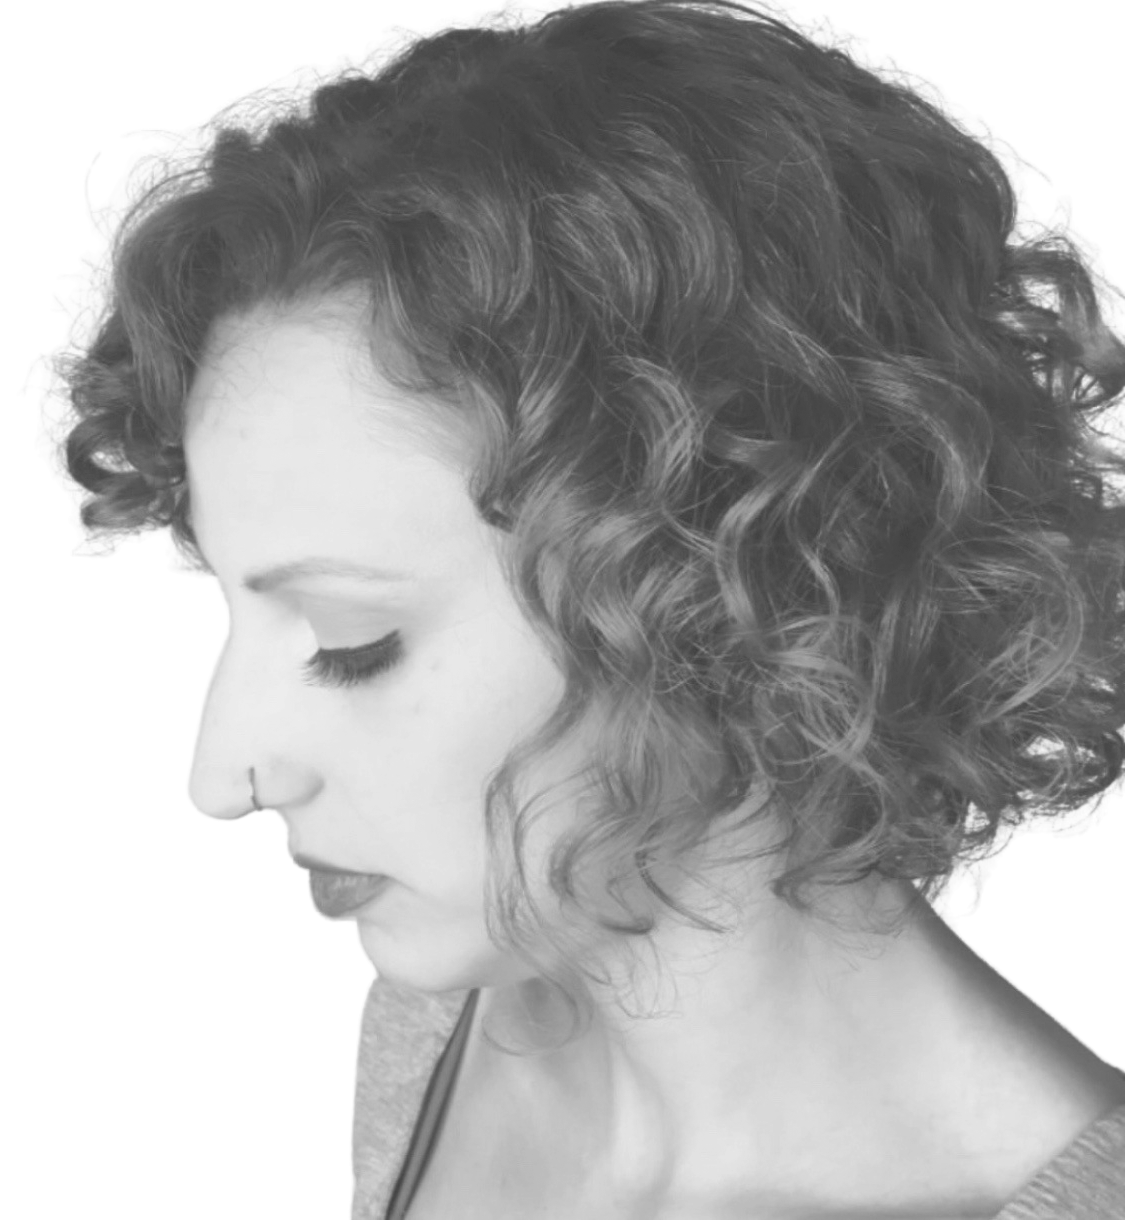 Side view of woman looking left showing her short curly hair